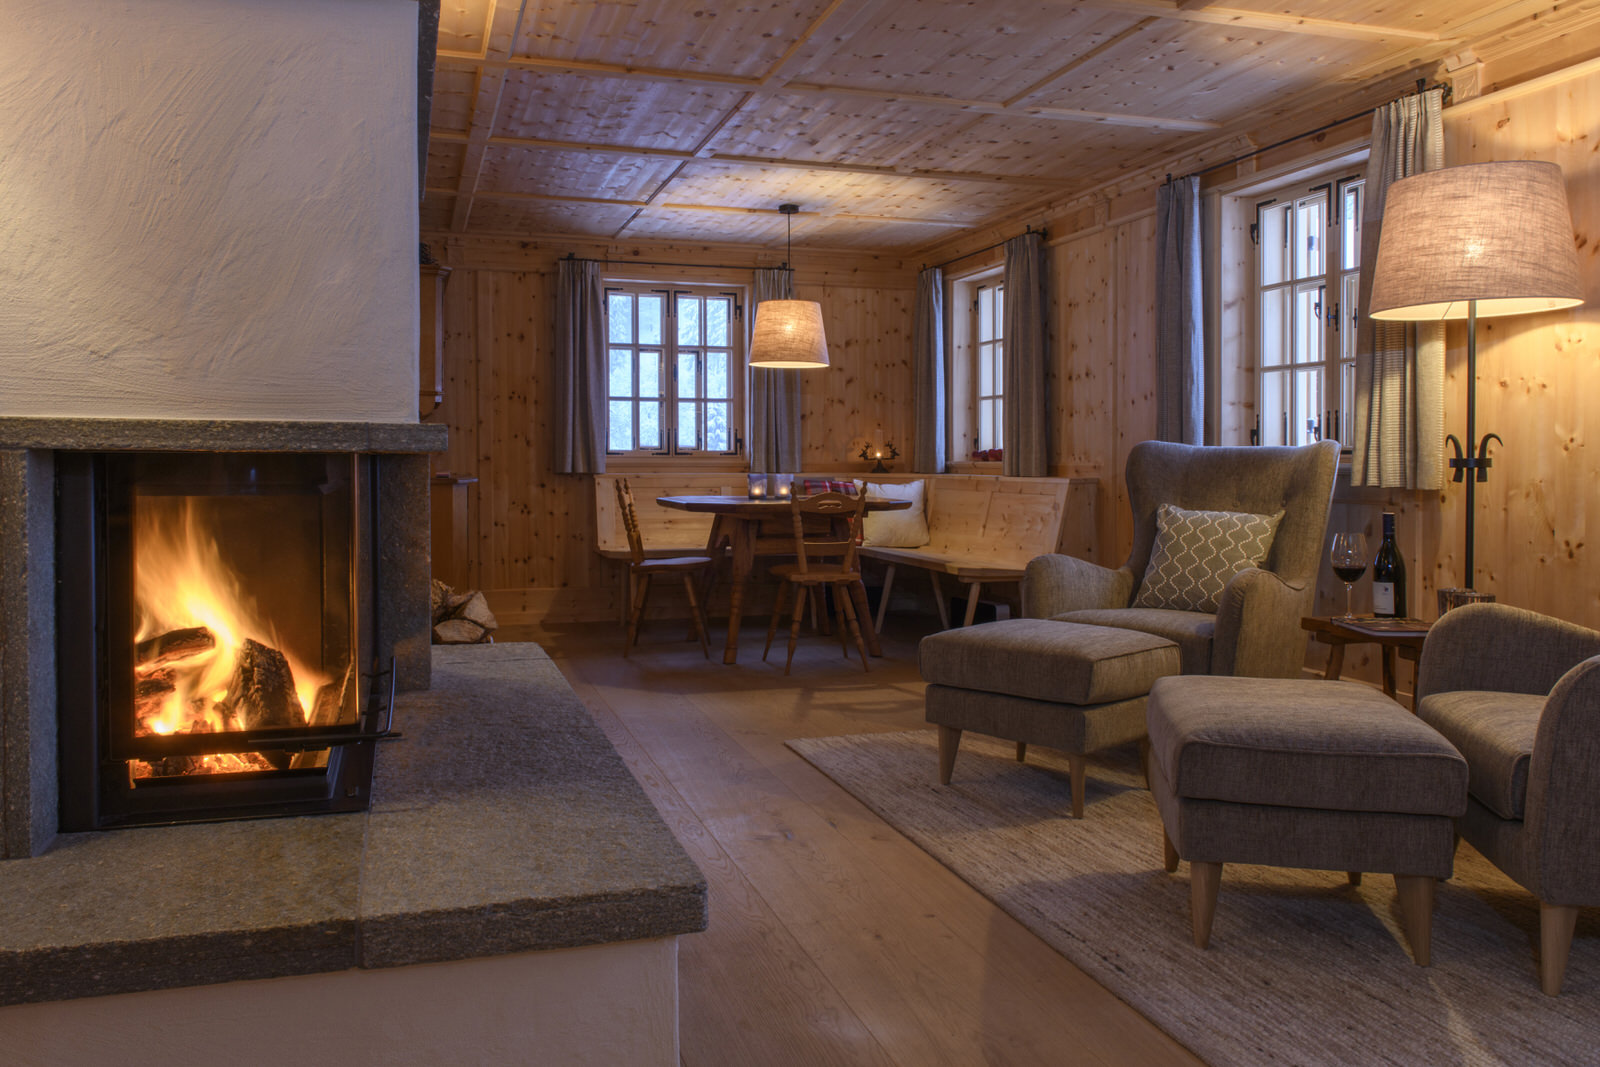 Exclusive mountain lodge Gauertal Montafon - living